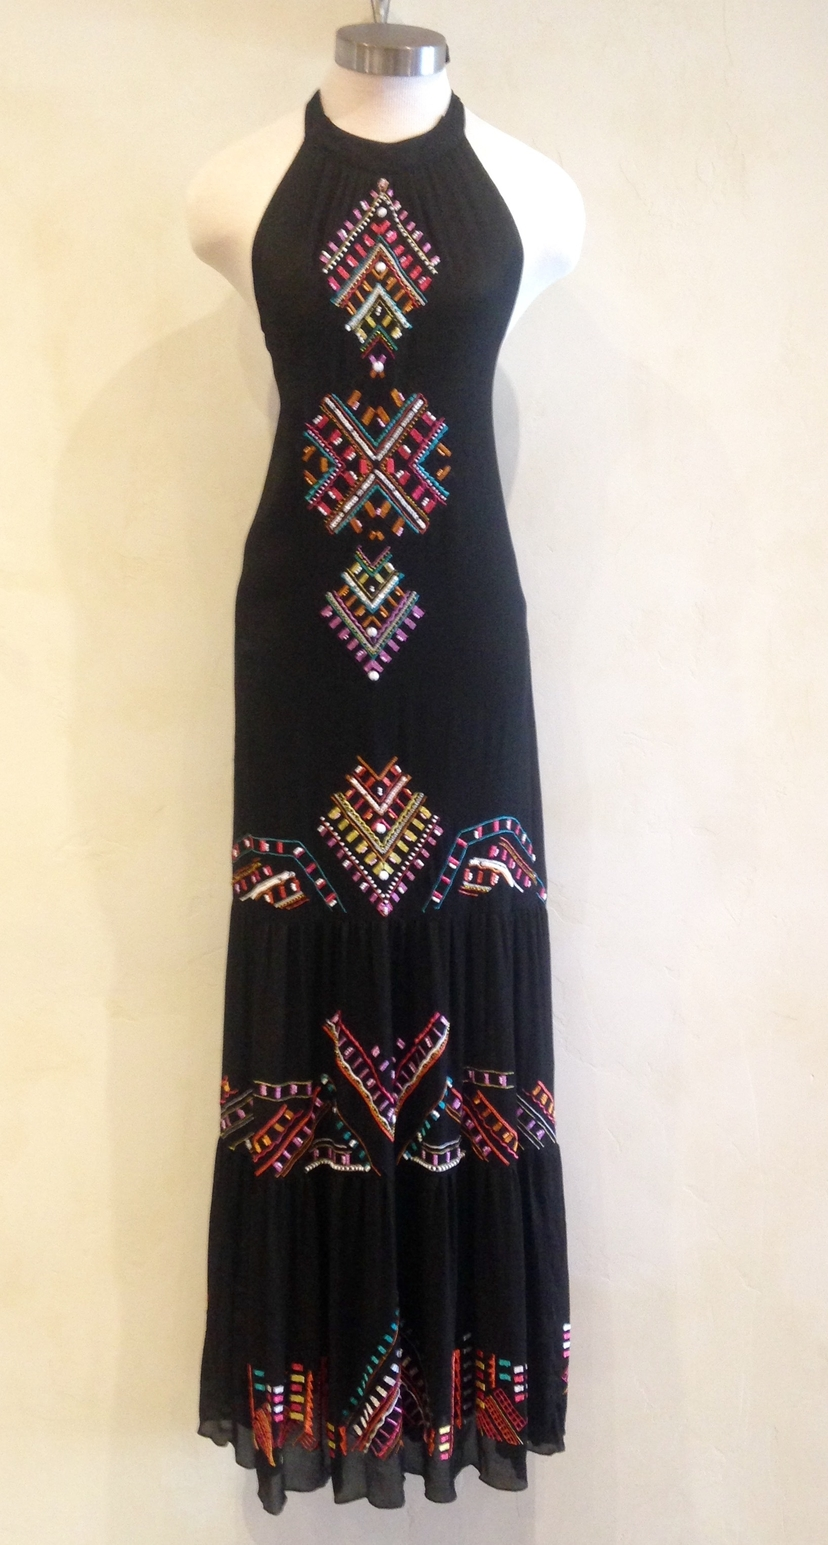 Nicole Miller Embroidered Maxi Dress Dresses